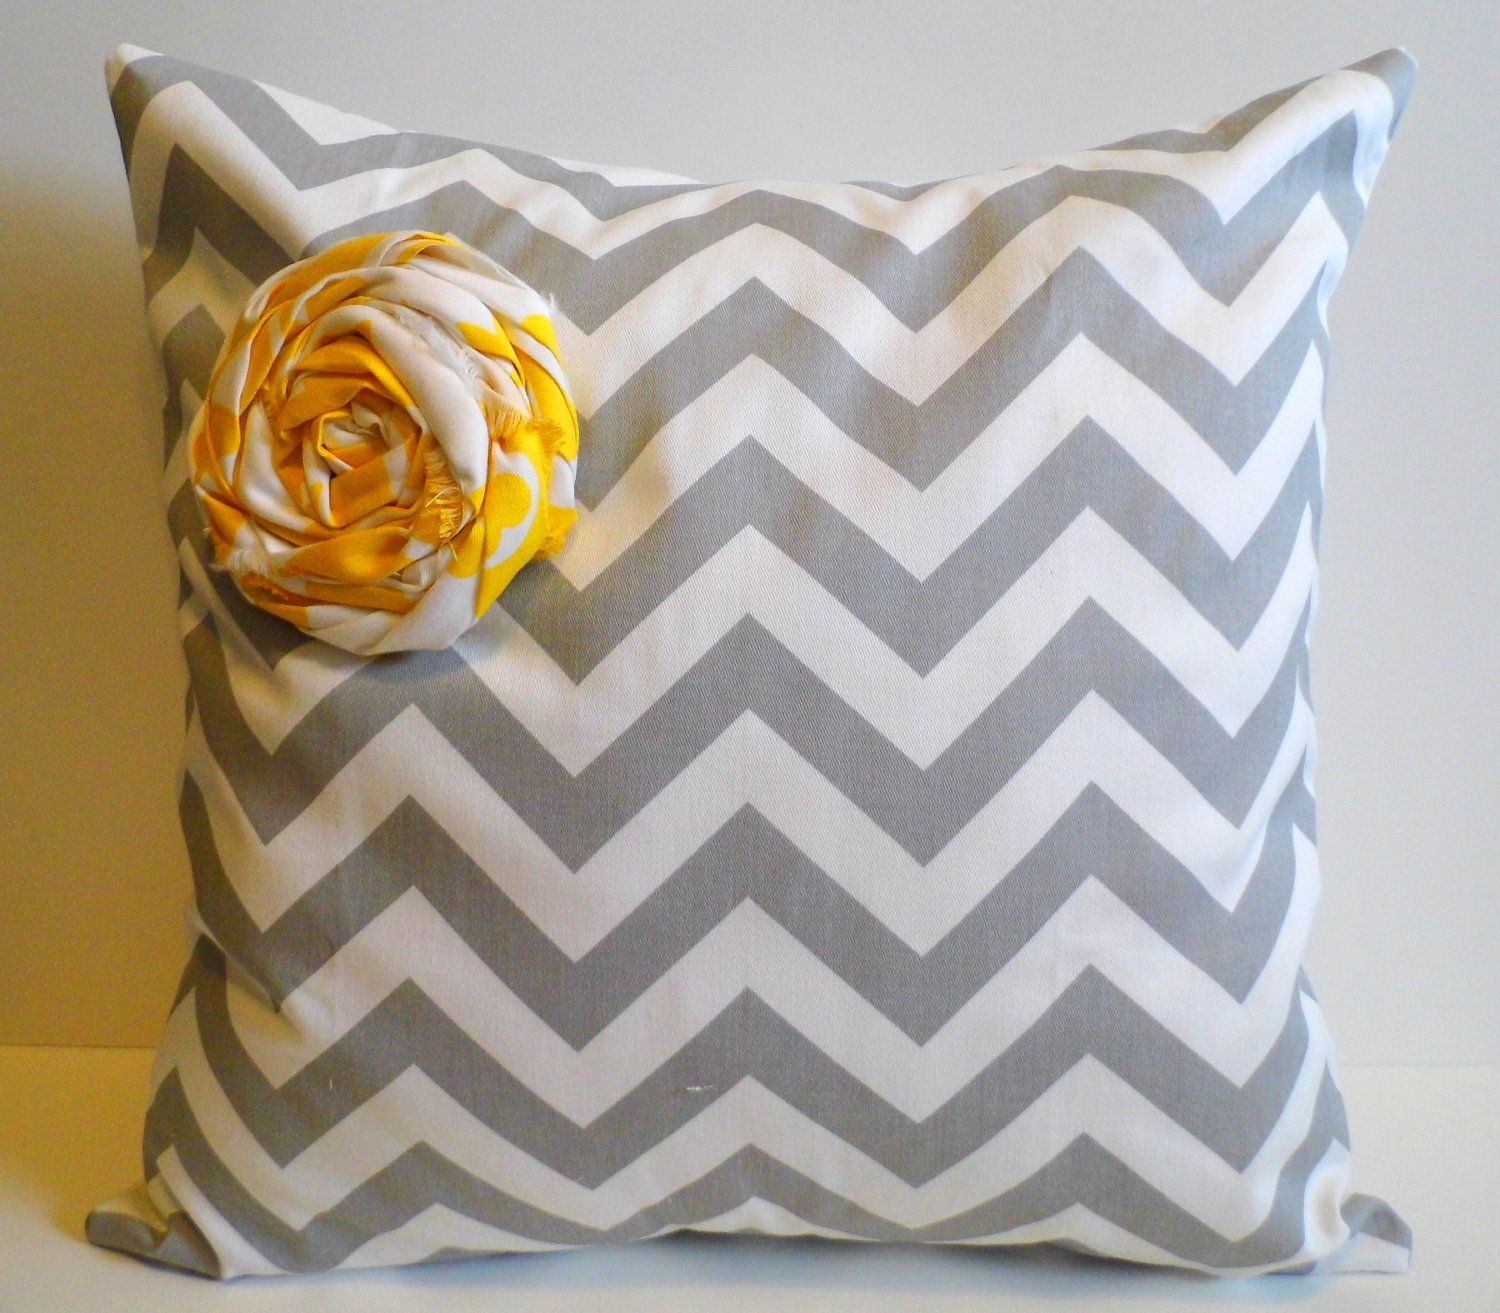 Chevron Throw Pillow 18x18 Cover Grey and White Yellow Rosette. $35.00, via Etsy. DIY: Pillow ...